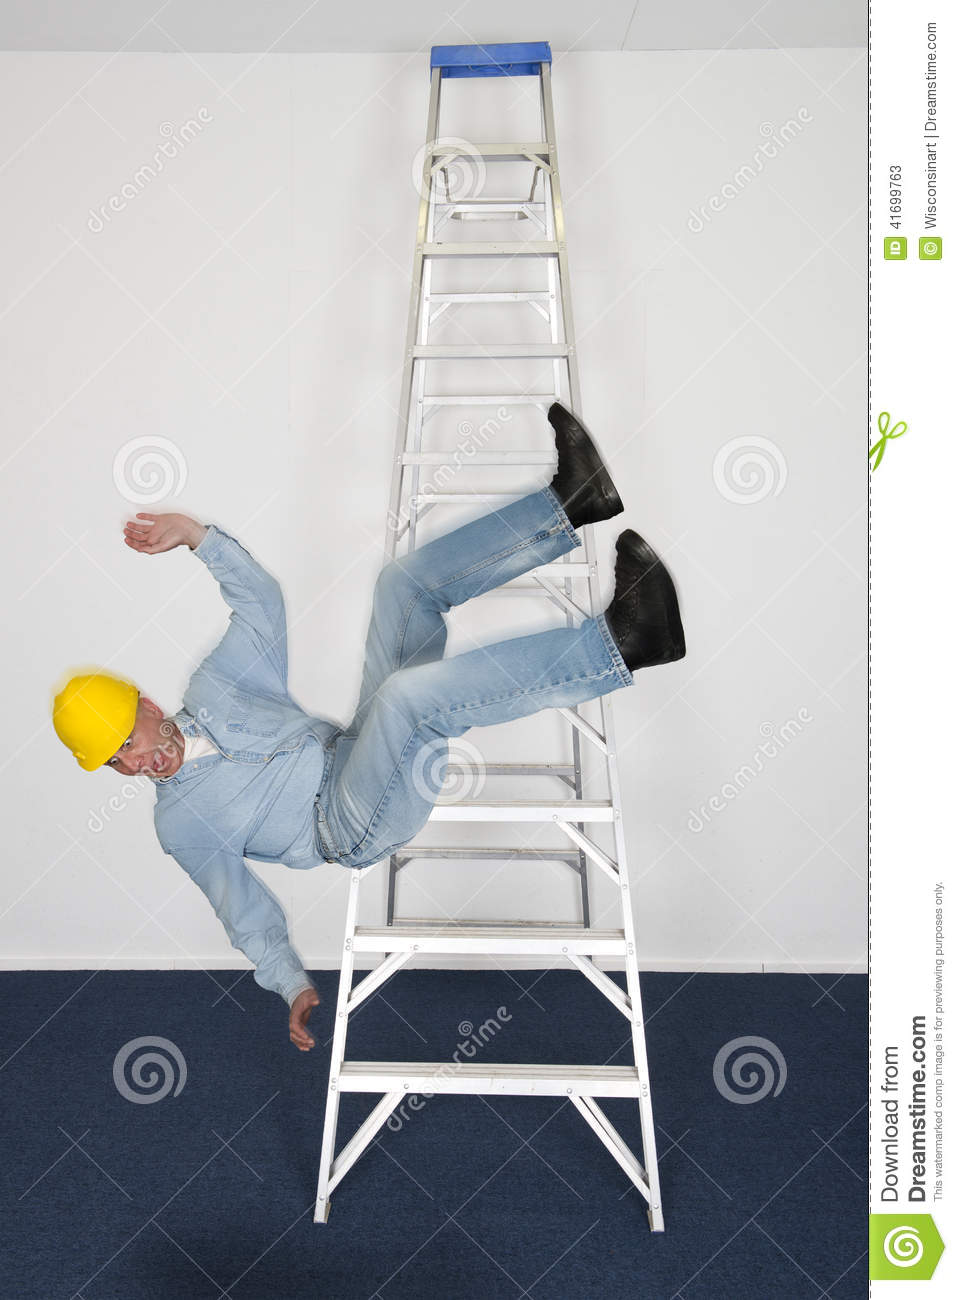 Download COnstruction Worker Or Contractor, Fall, Accident On Job Or Work Stock Image - Image of works, fell: 41699763